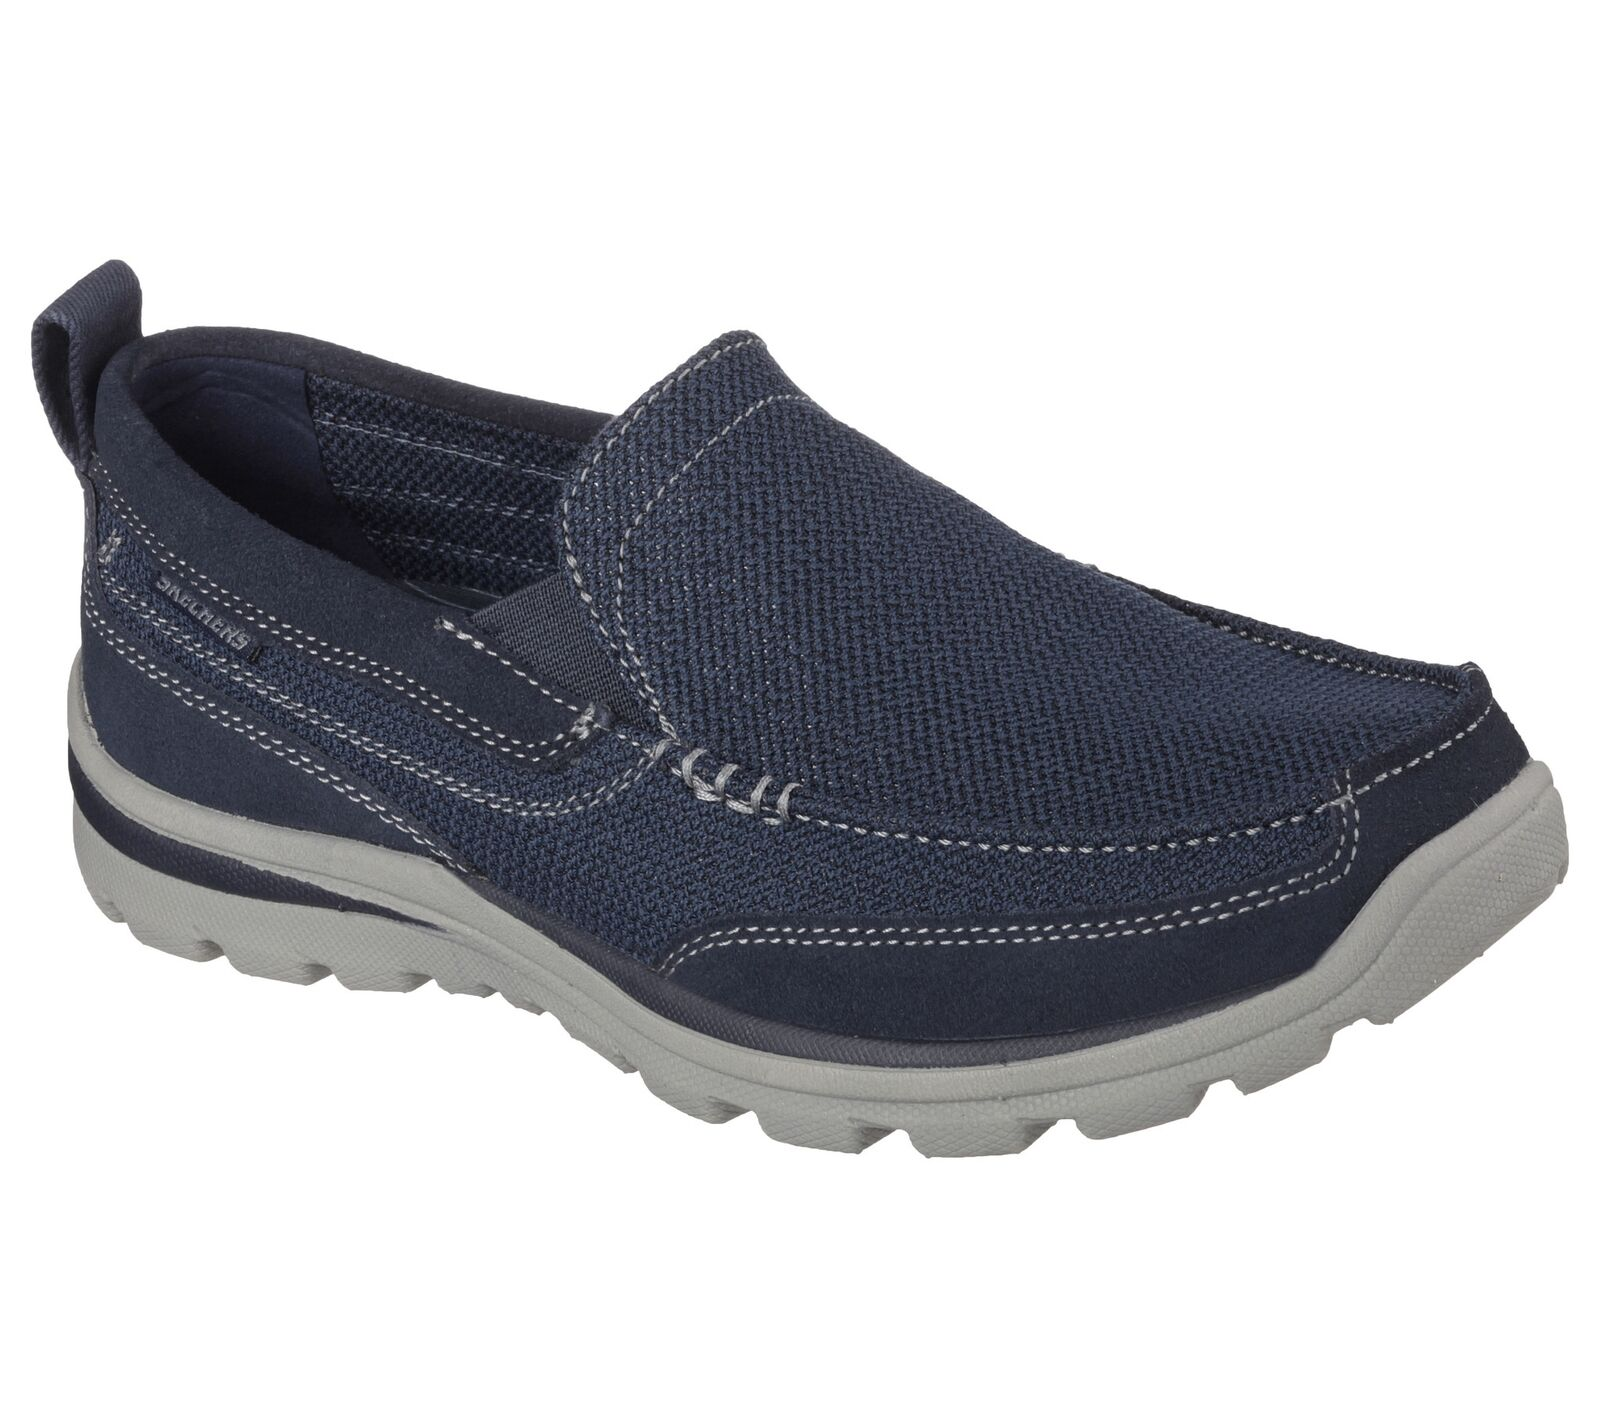 Skechers Relaxed - Fit - Relaxed Milford - 64365 Navy Schuhes a853d1